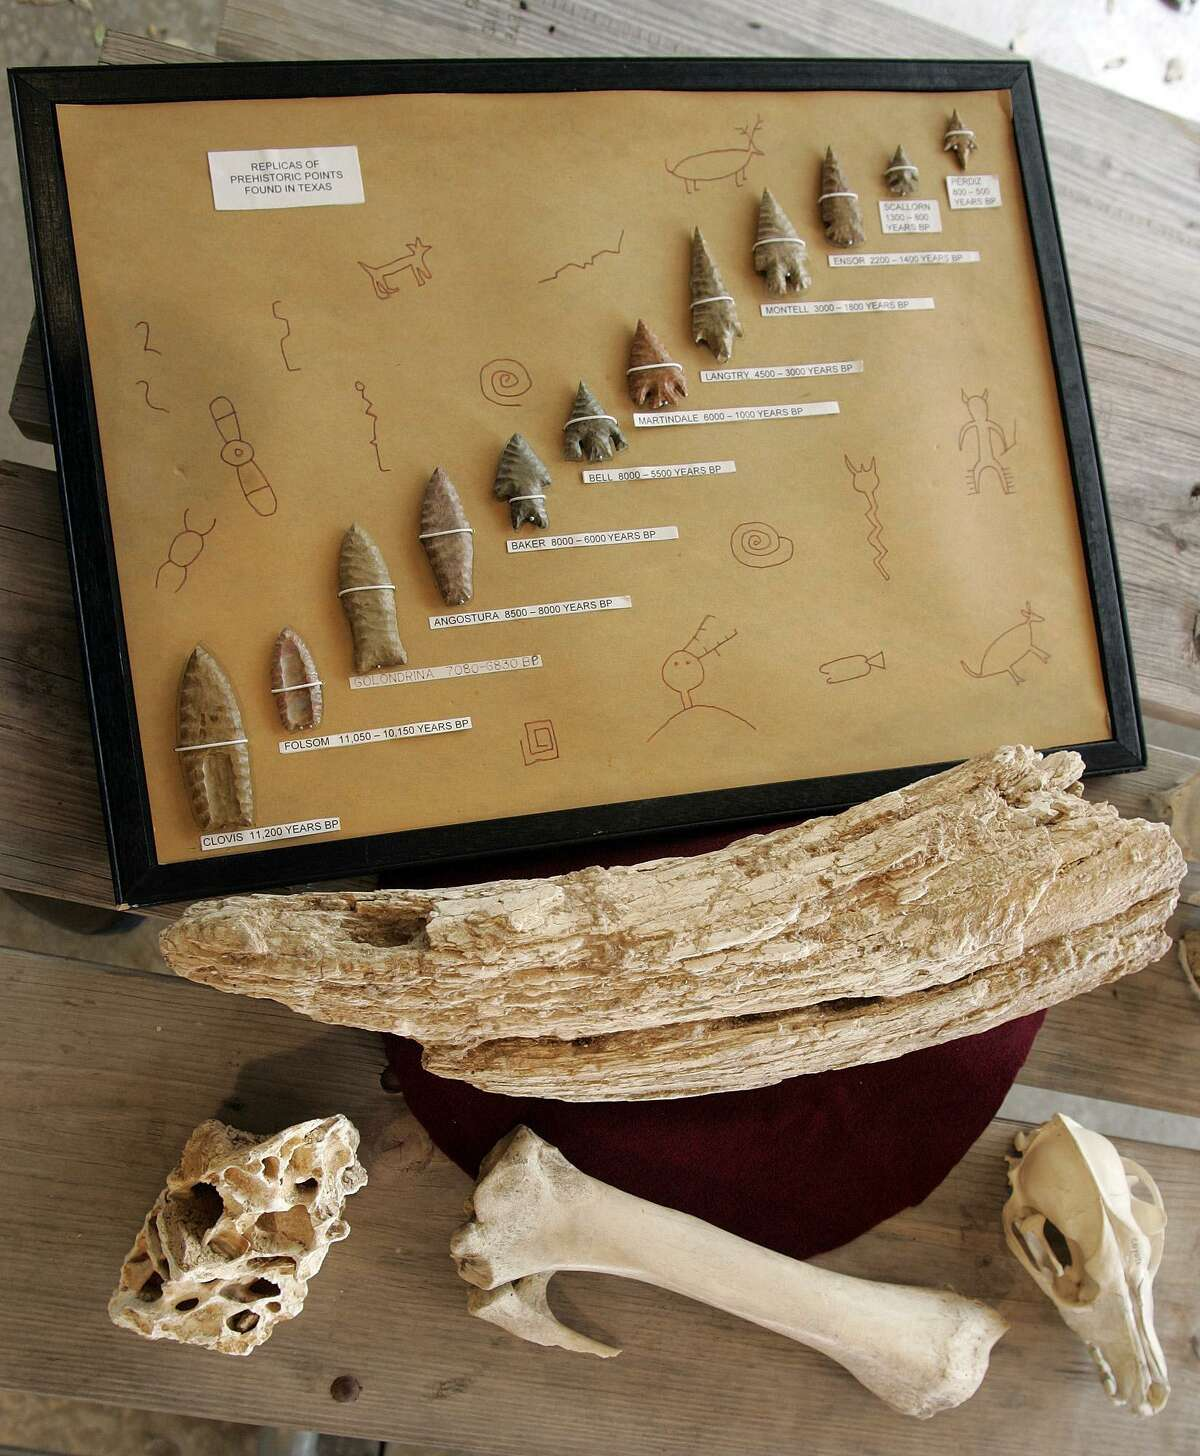 """As part of its Legacy outreach program, the Center for Archaeological Research hosted """"Long, Long Ago,"""" a hands-on activity presented at Eisenhower Park in 2006. This is a display showing a chronology of stone points, along with a mammoth bone and tusk, a coyote skull and bison bone."""